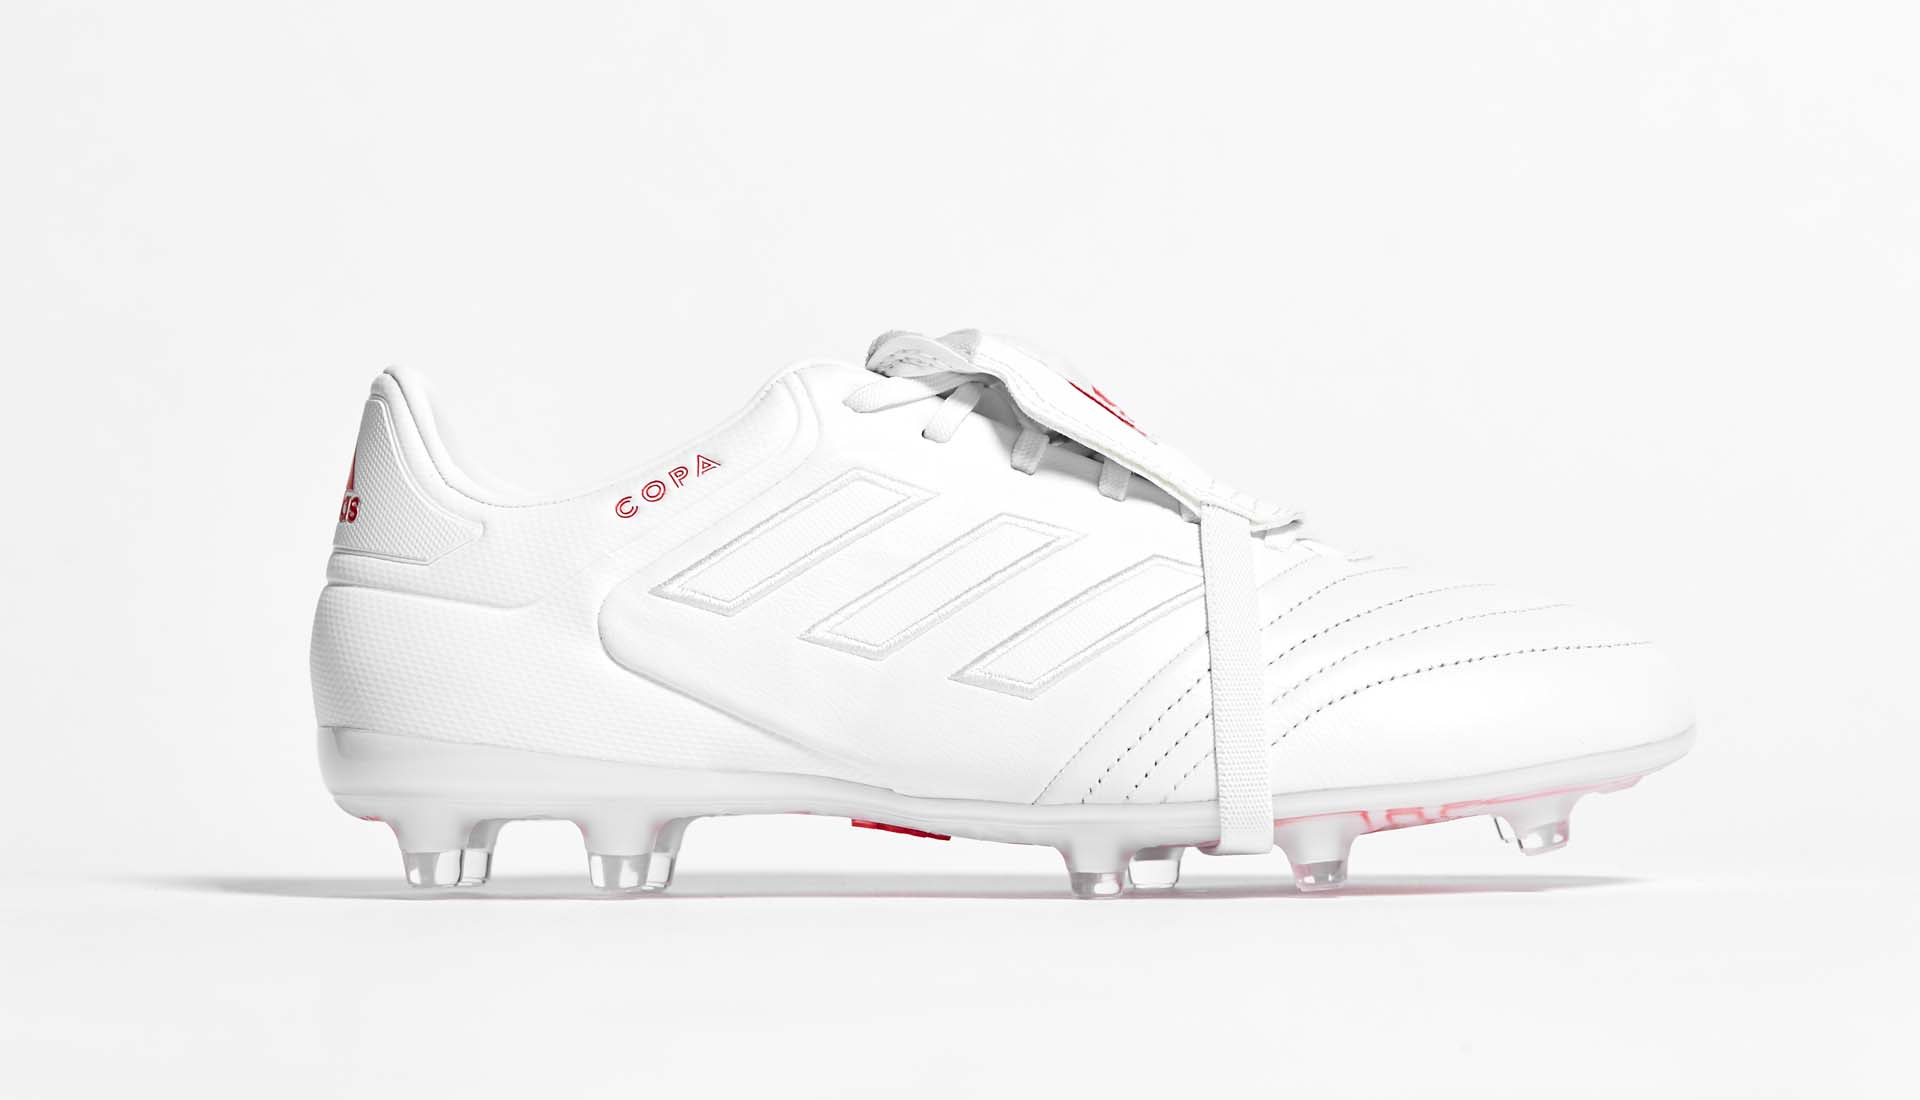 finest selection f9824 69c6b adidas-copa-gloro-white-red-4.jpg